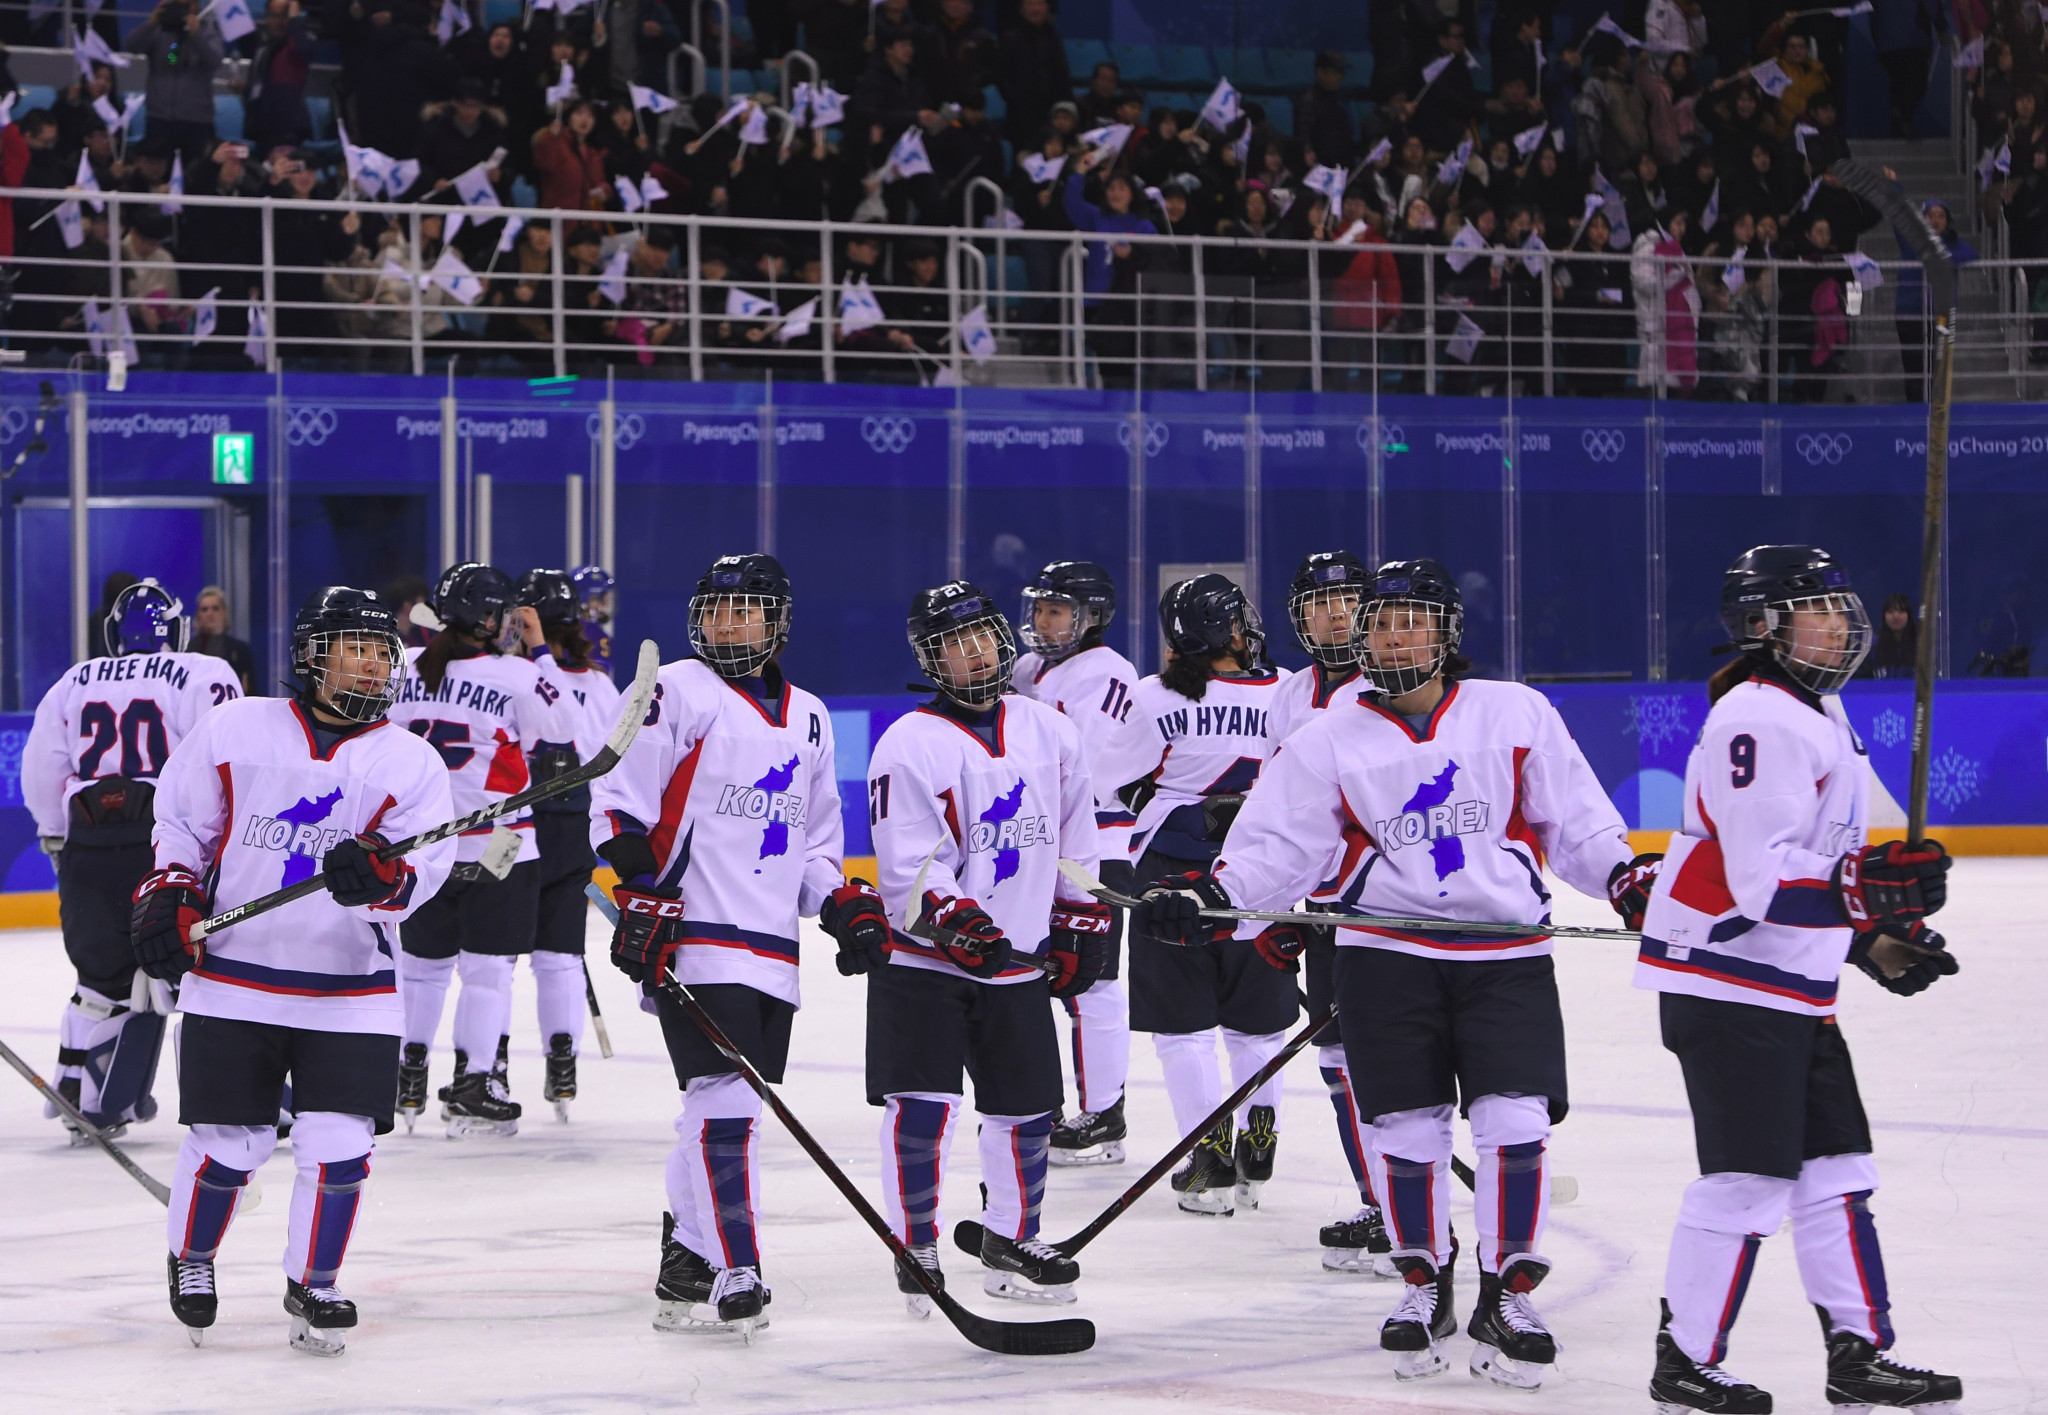 A unified Korean ice hockey women's team featured at Pyeongchang 2018 ©Getty Images